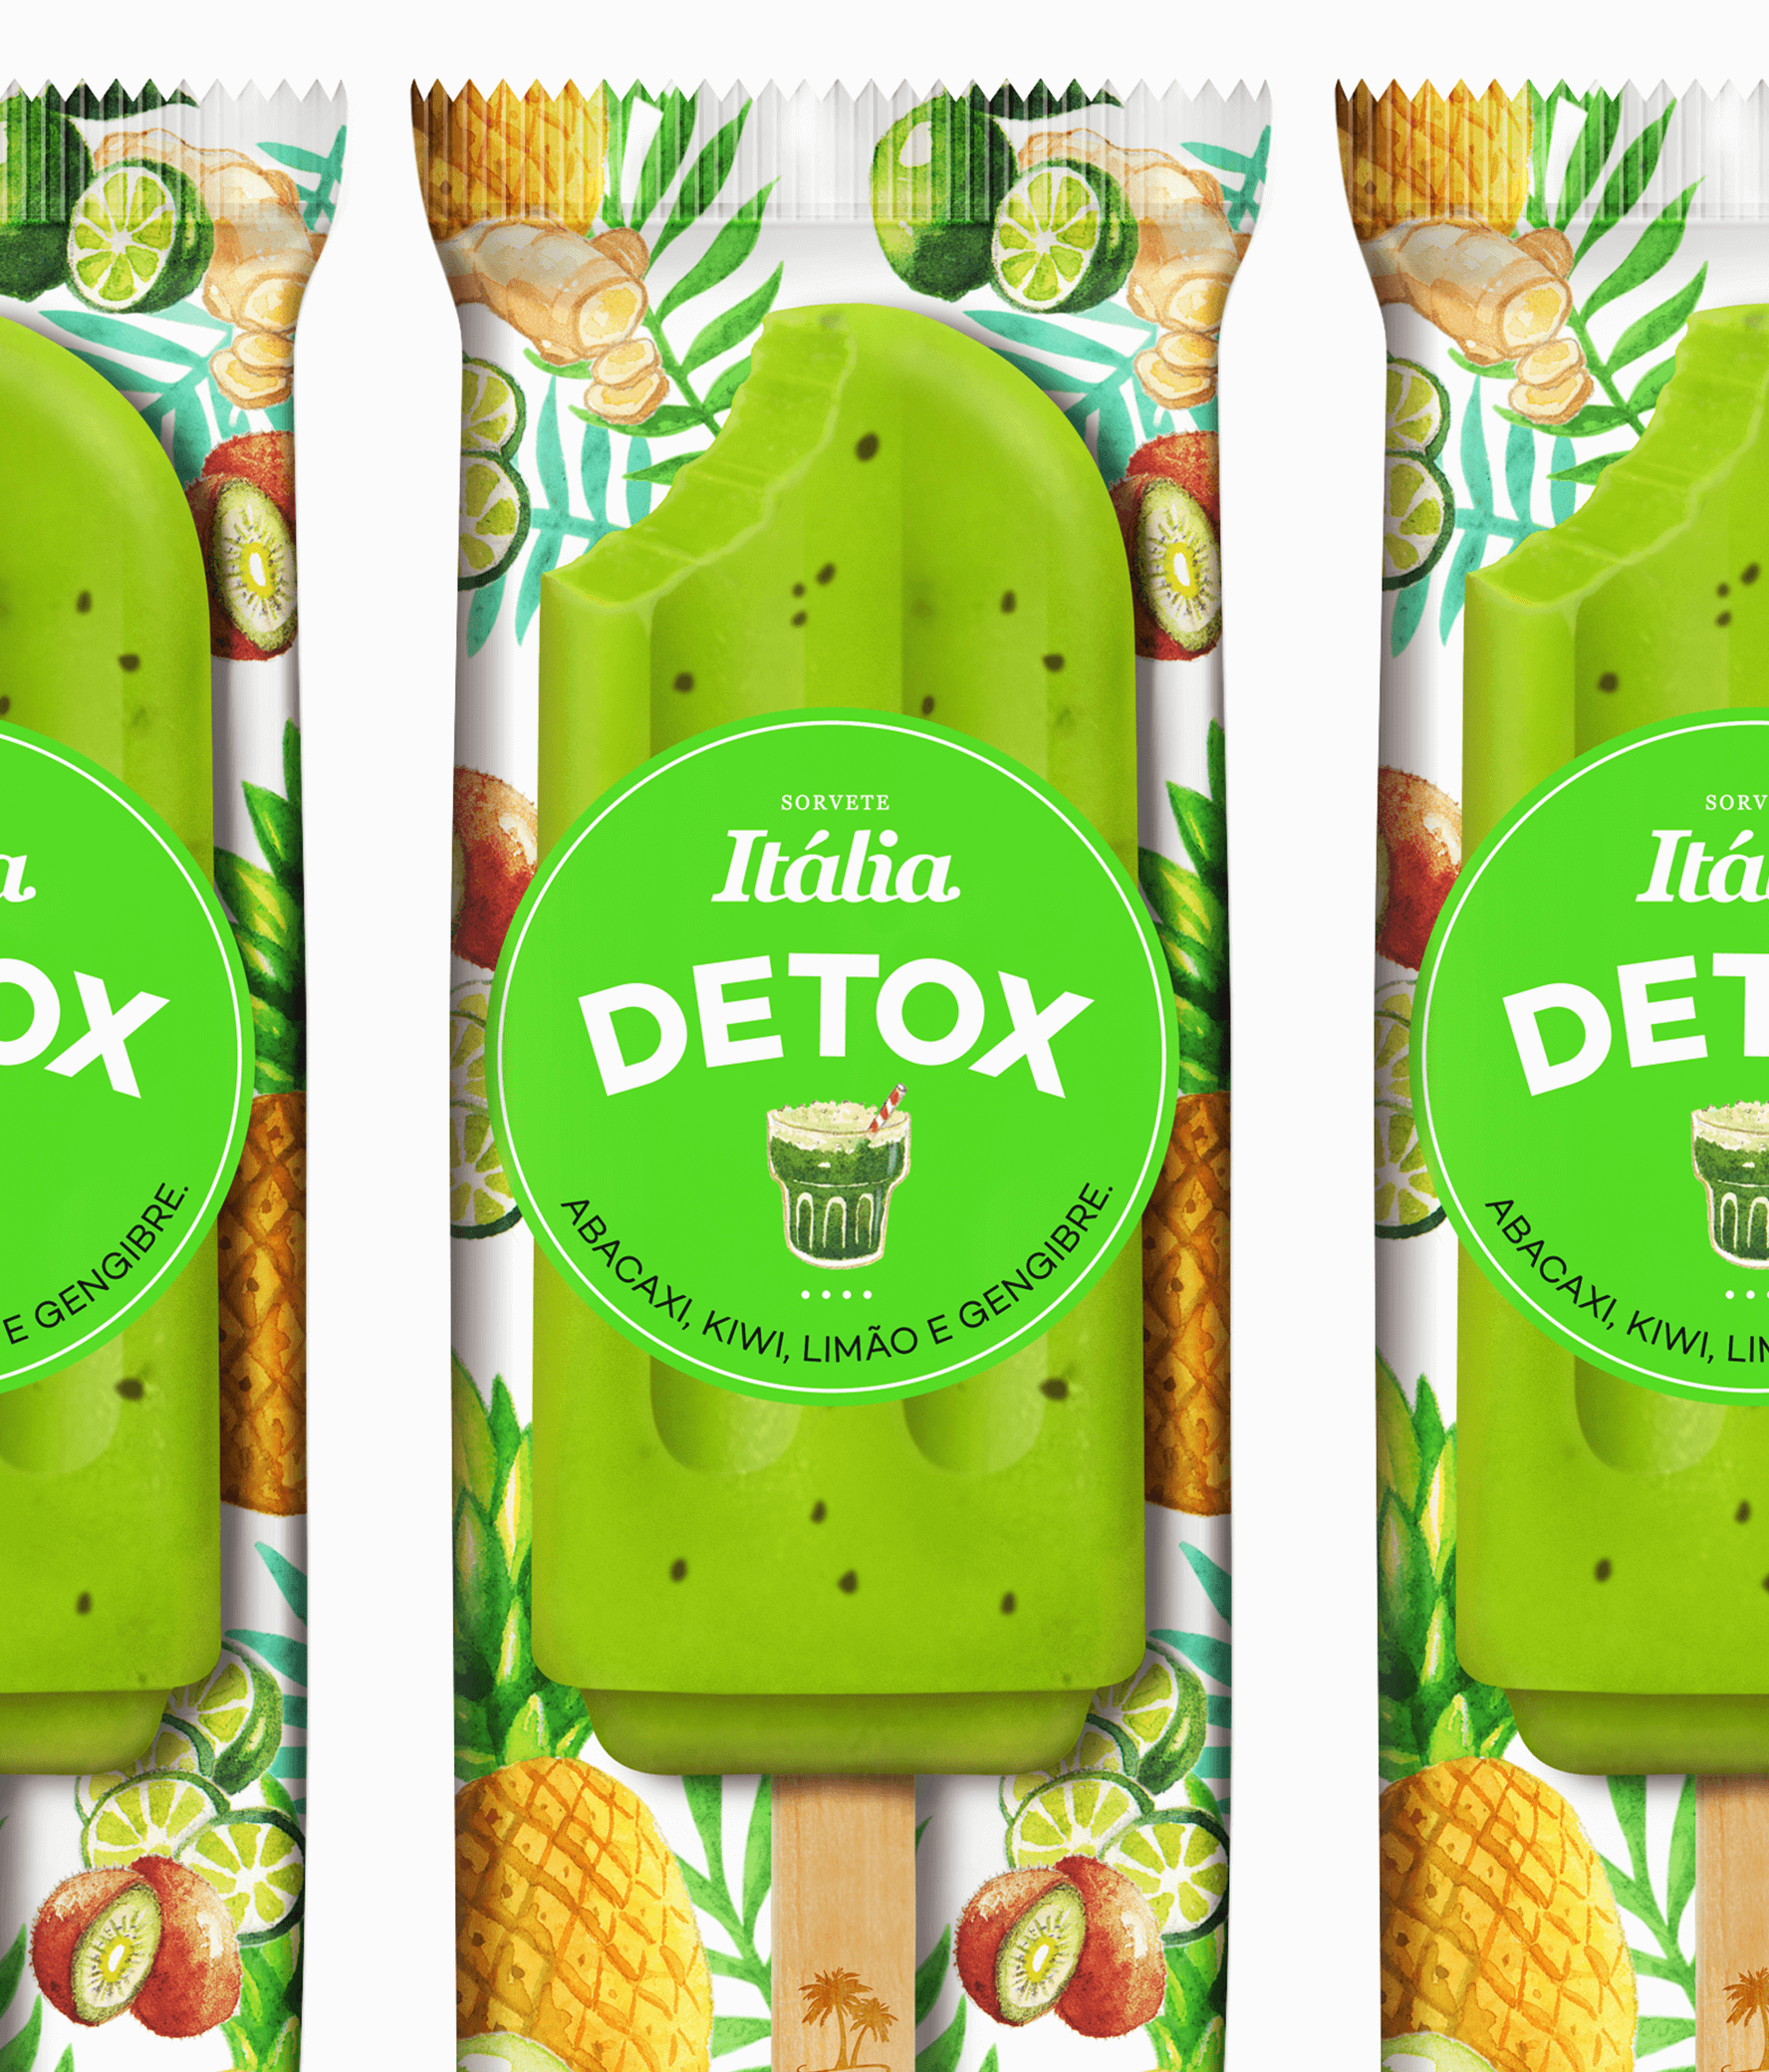 Itália Ice Cream Detox